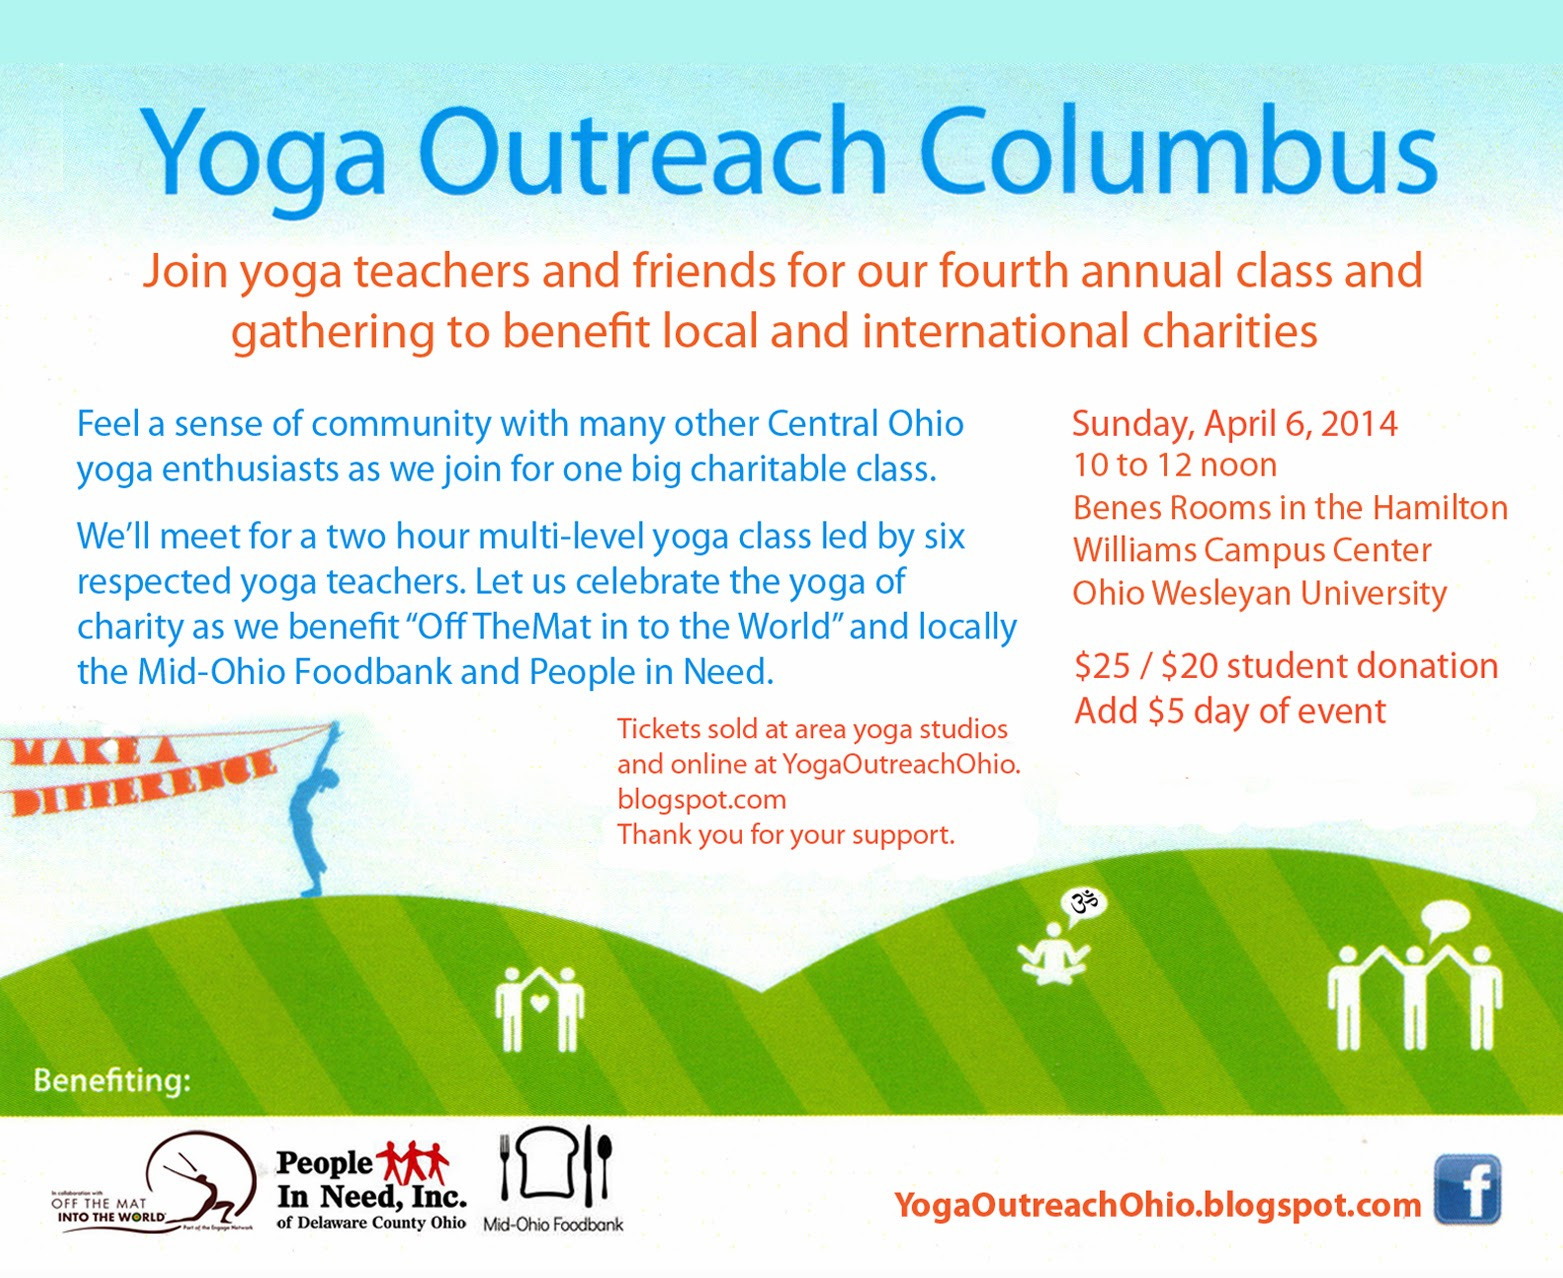 http://yogaoutreach.thewolfenet.com/paypal.asp